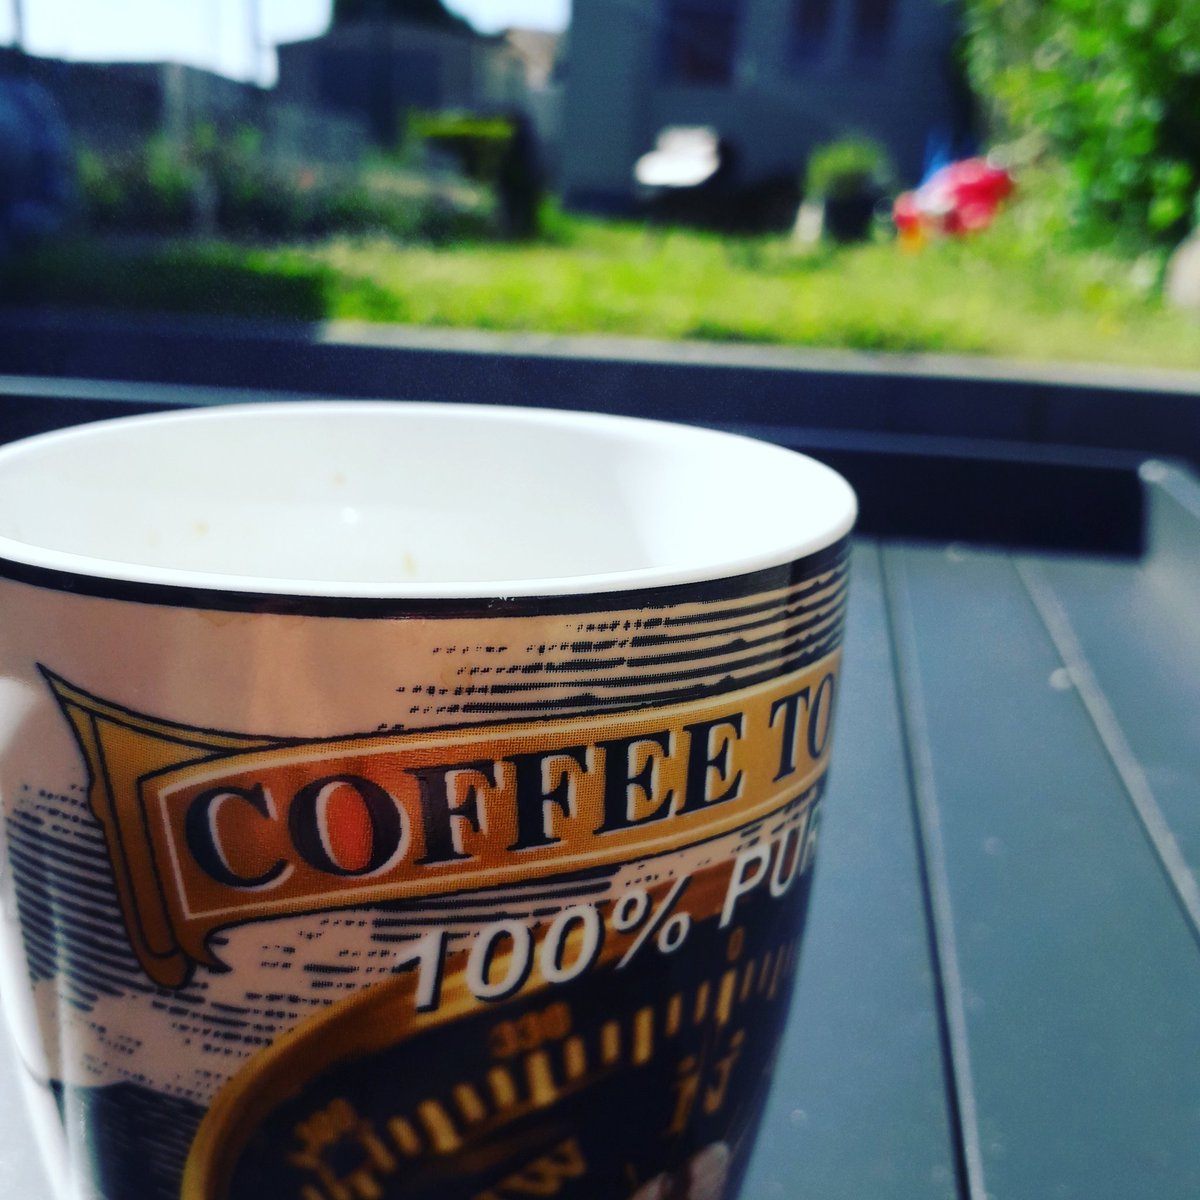 My morning coffee in the sun!  #happy #sun #finally #morningcoffee https://t.co/R6br9oASoa